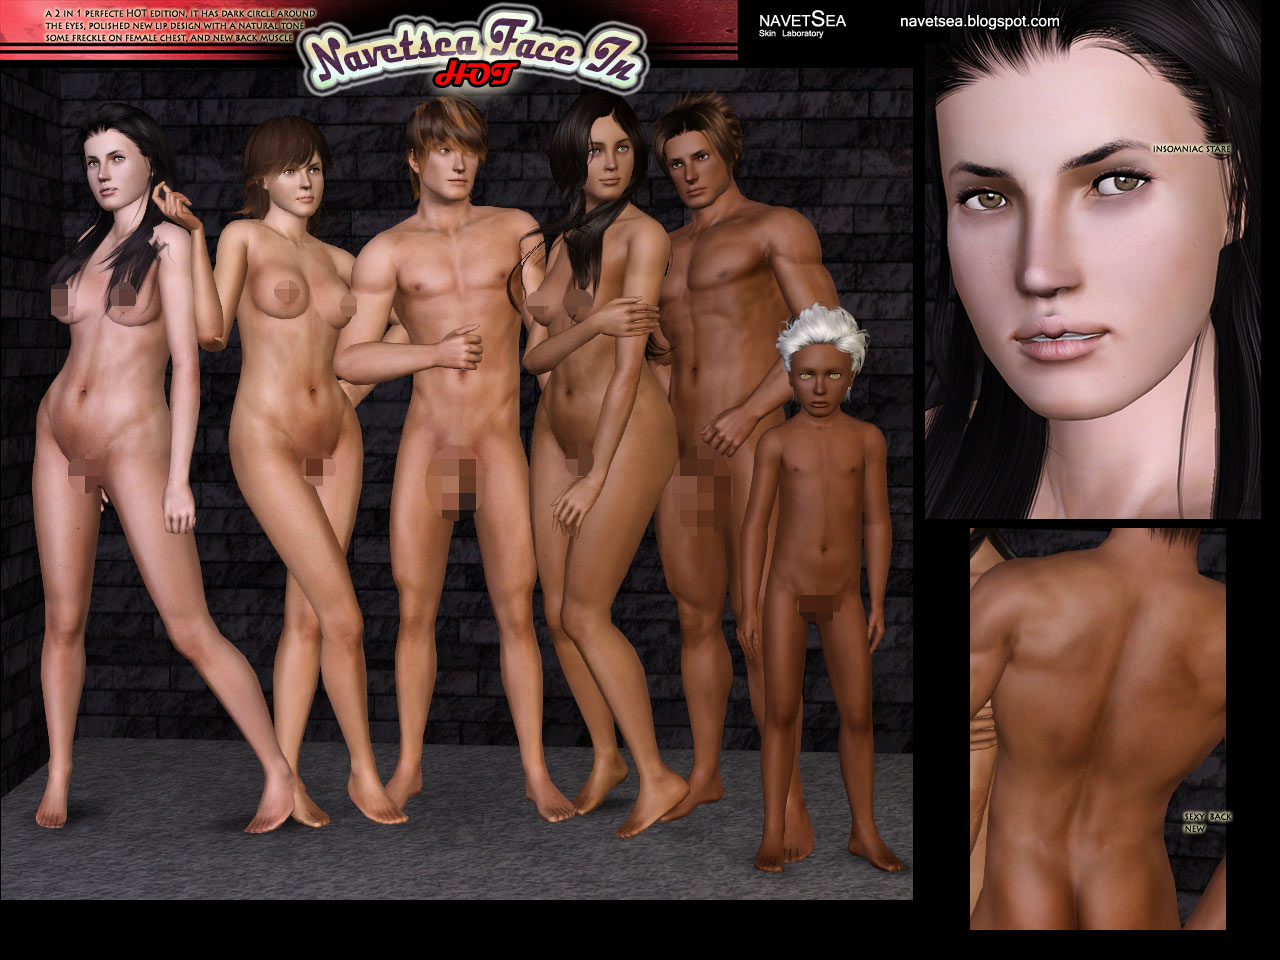 Naked sims in game nackt pictures